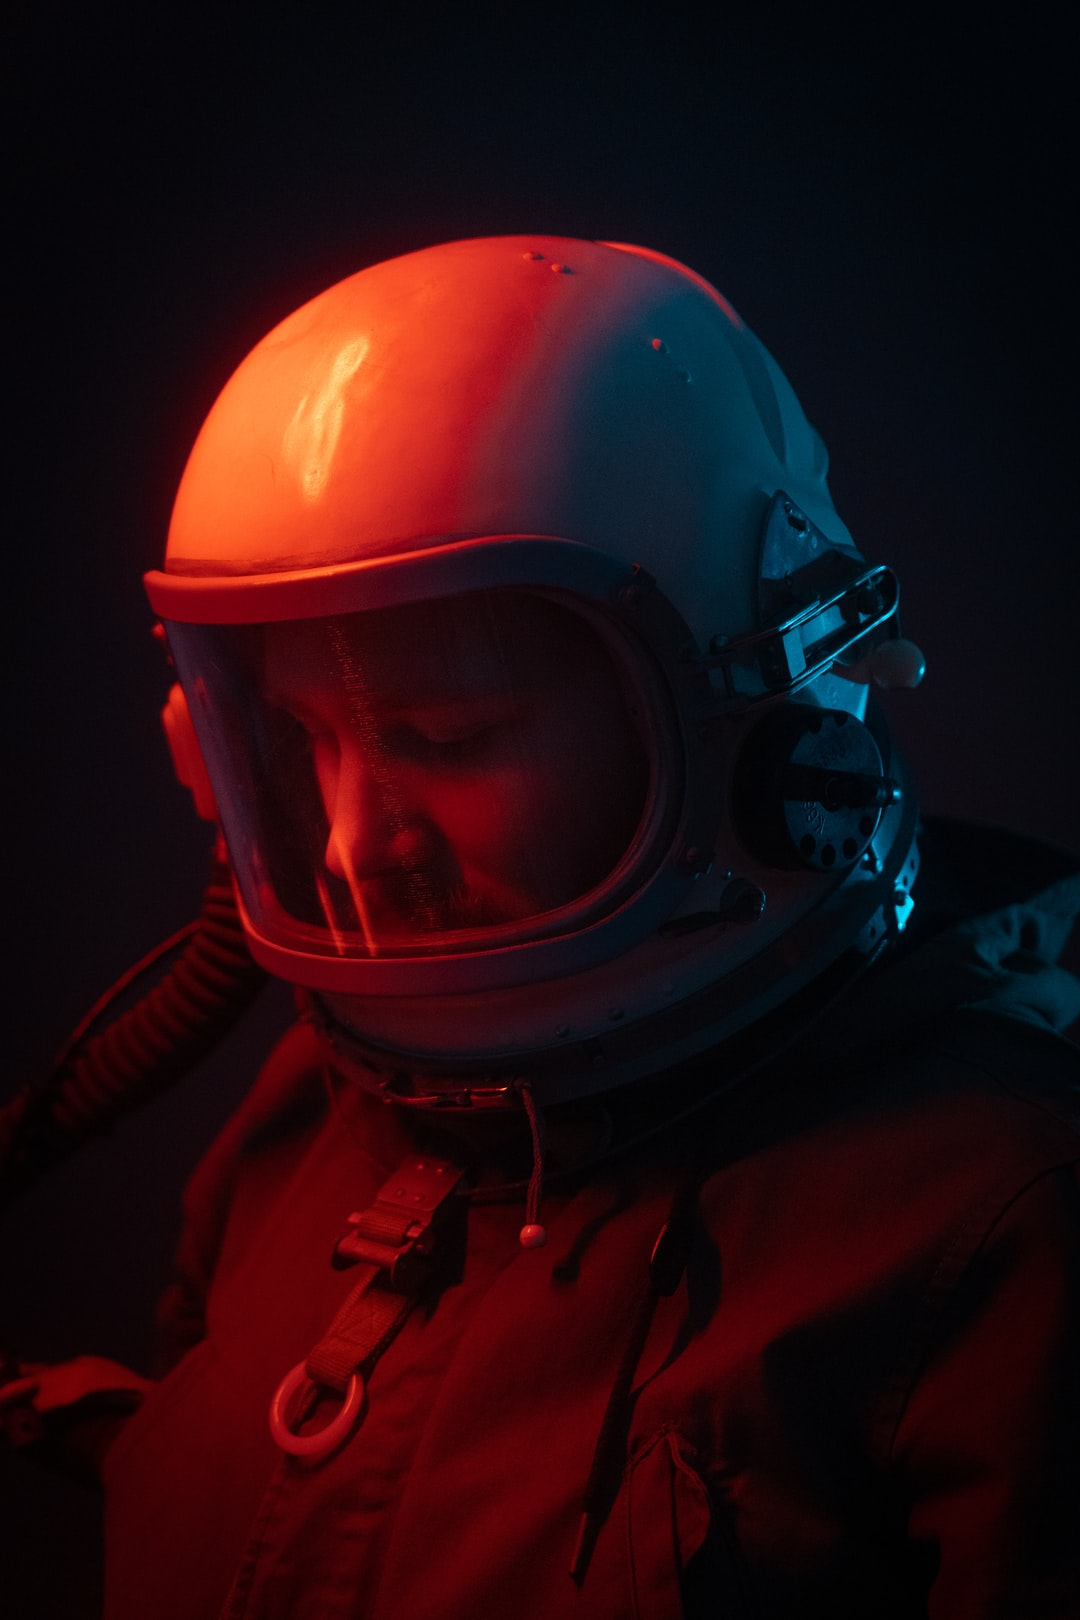 Astronaut in Red & Blue